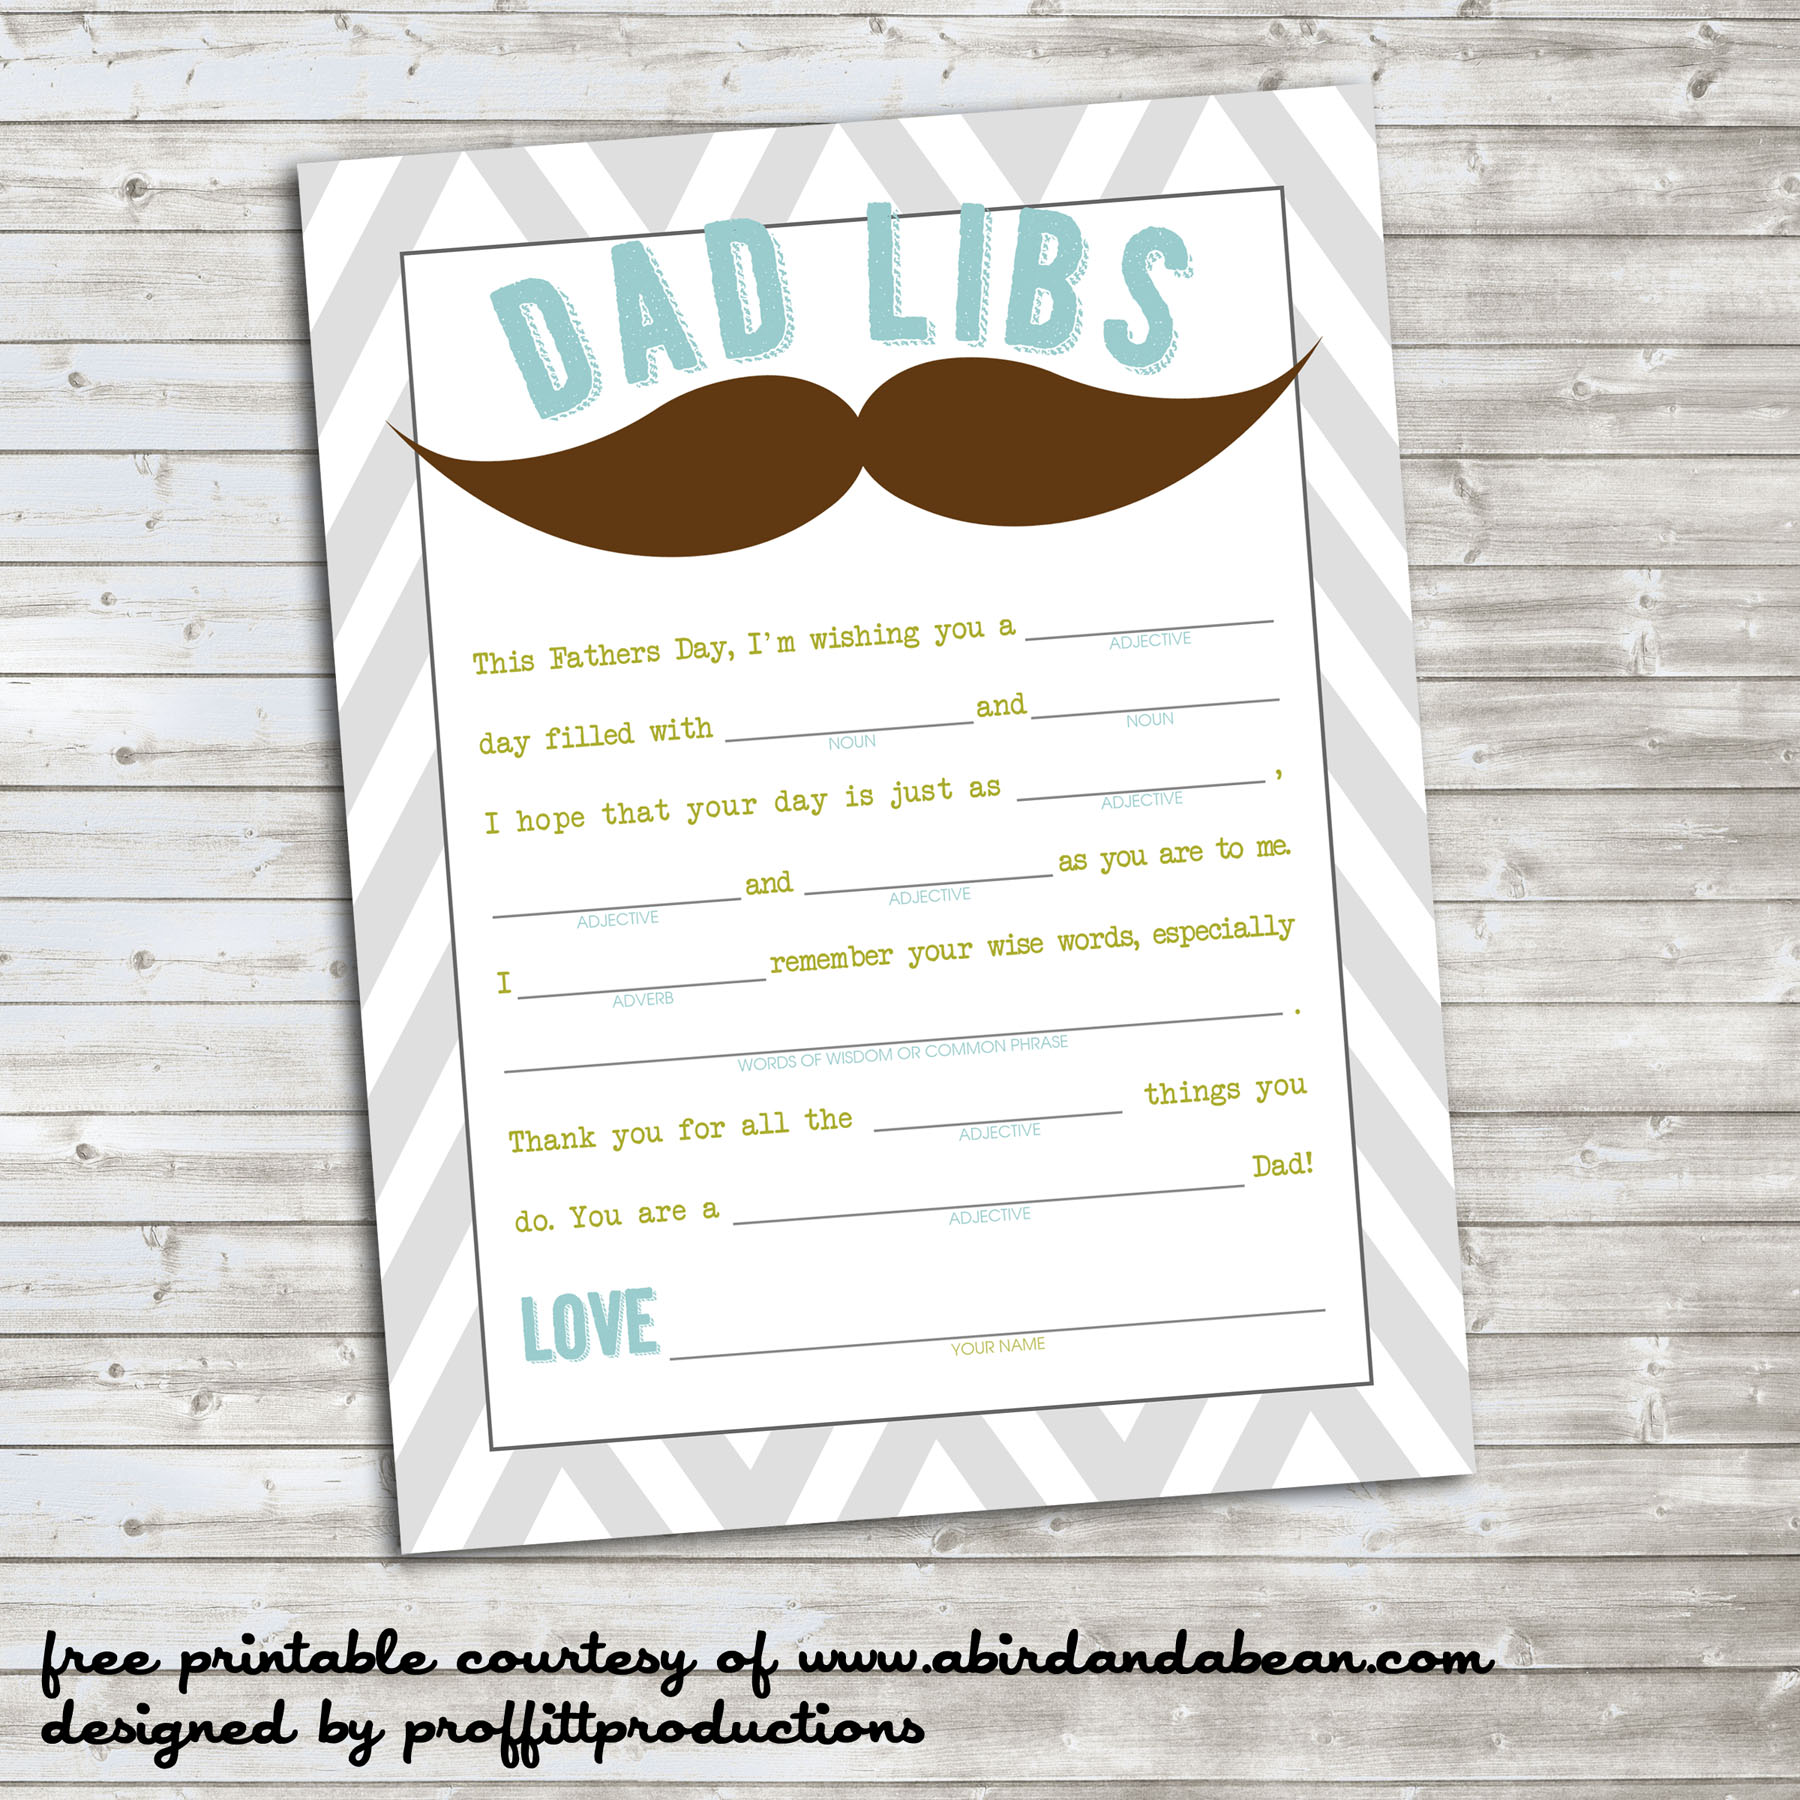 Dad Libs Free Printable